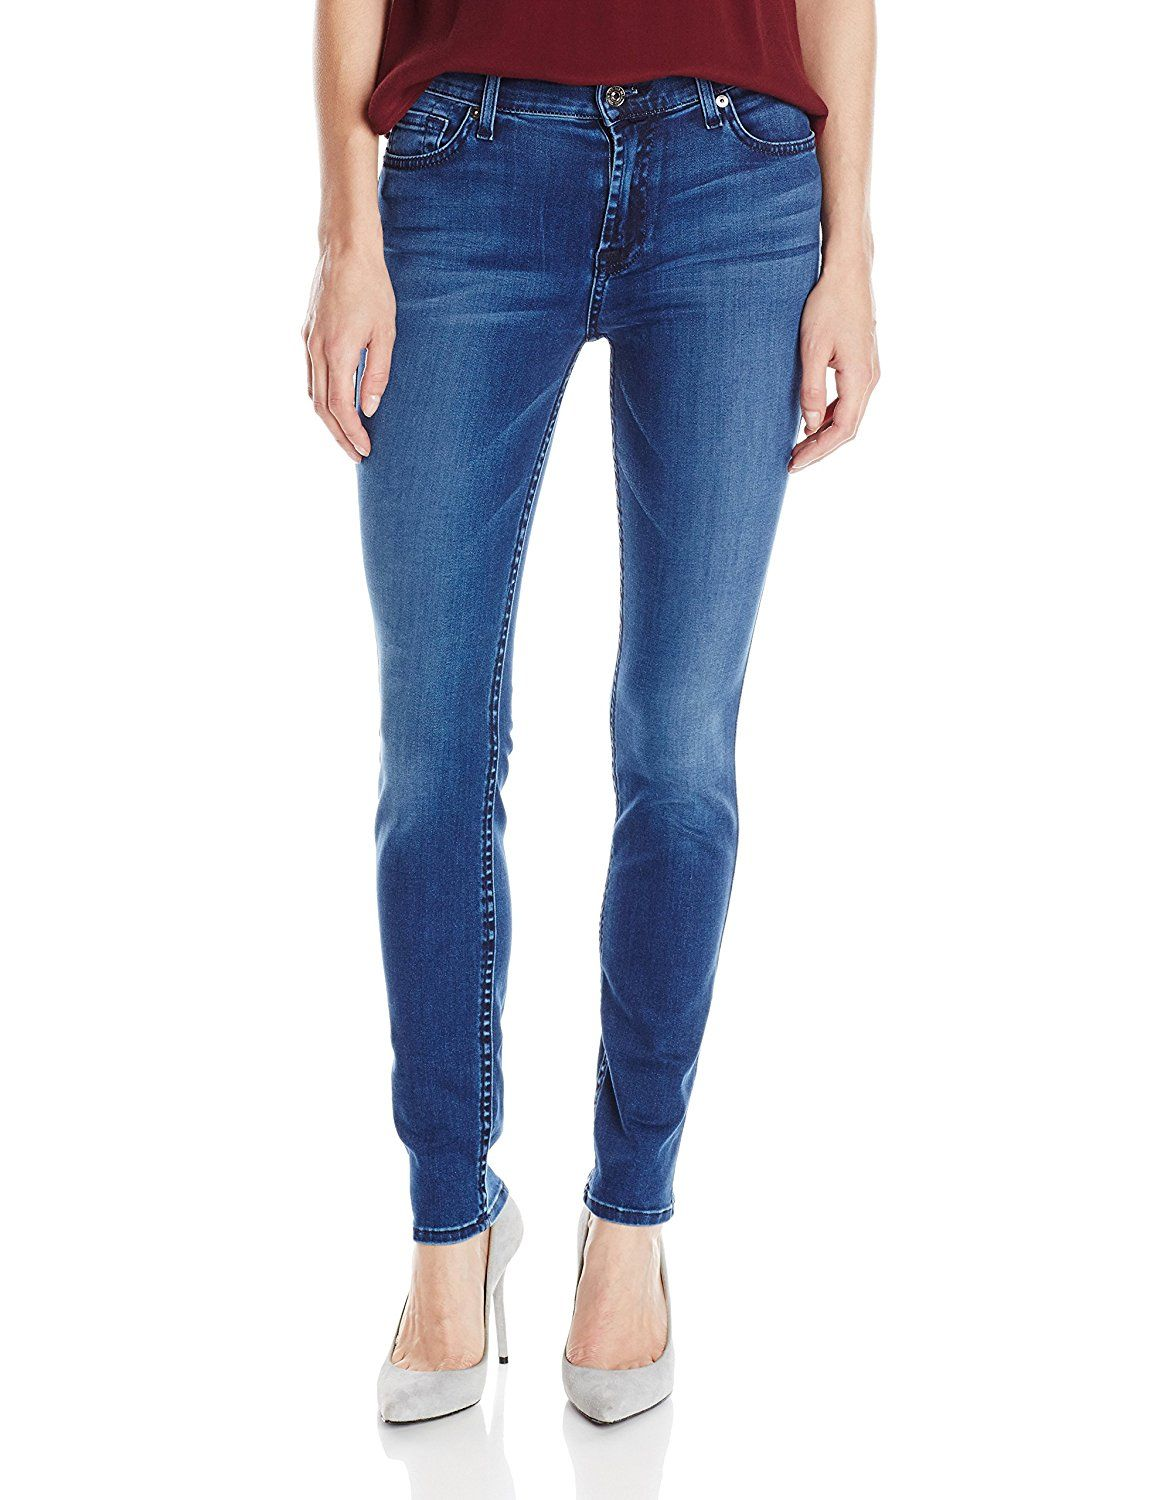 7 For All Mankind Women's Skinny Jean In Pure Medium Vintage Sateen ** Continue to the product at the image link.